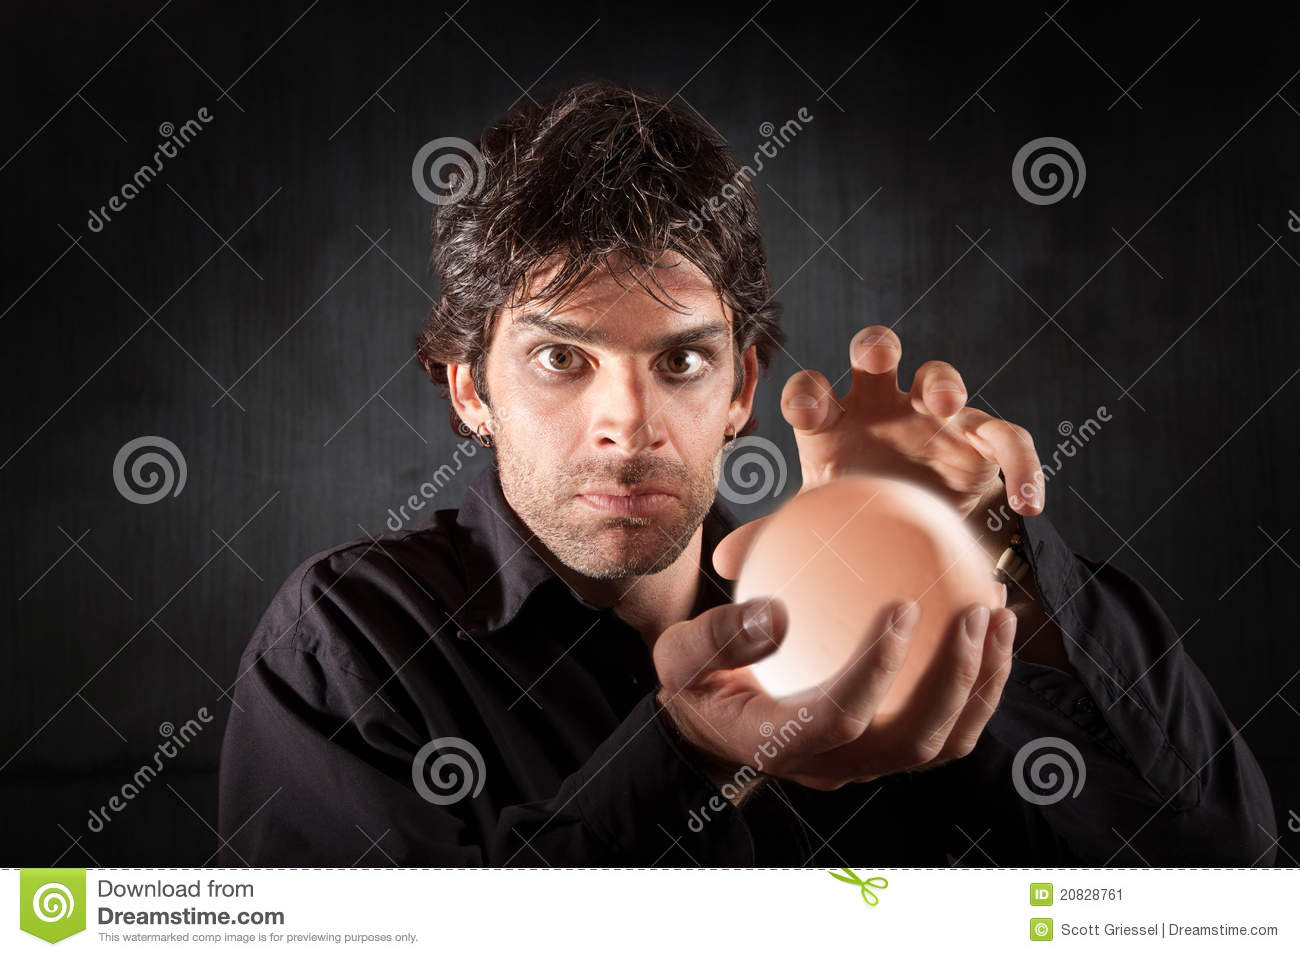 Male Fortune Teller Stock Image - Image: 20828761